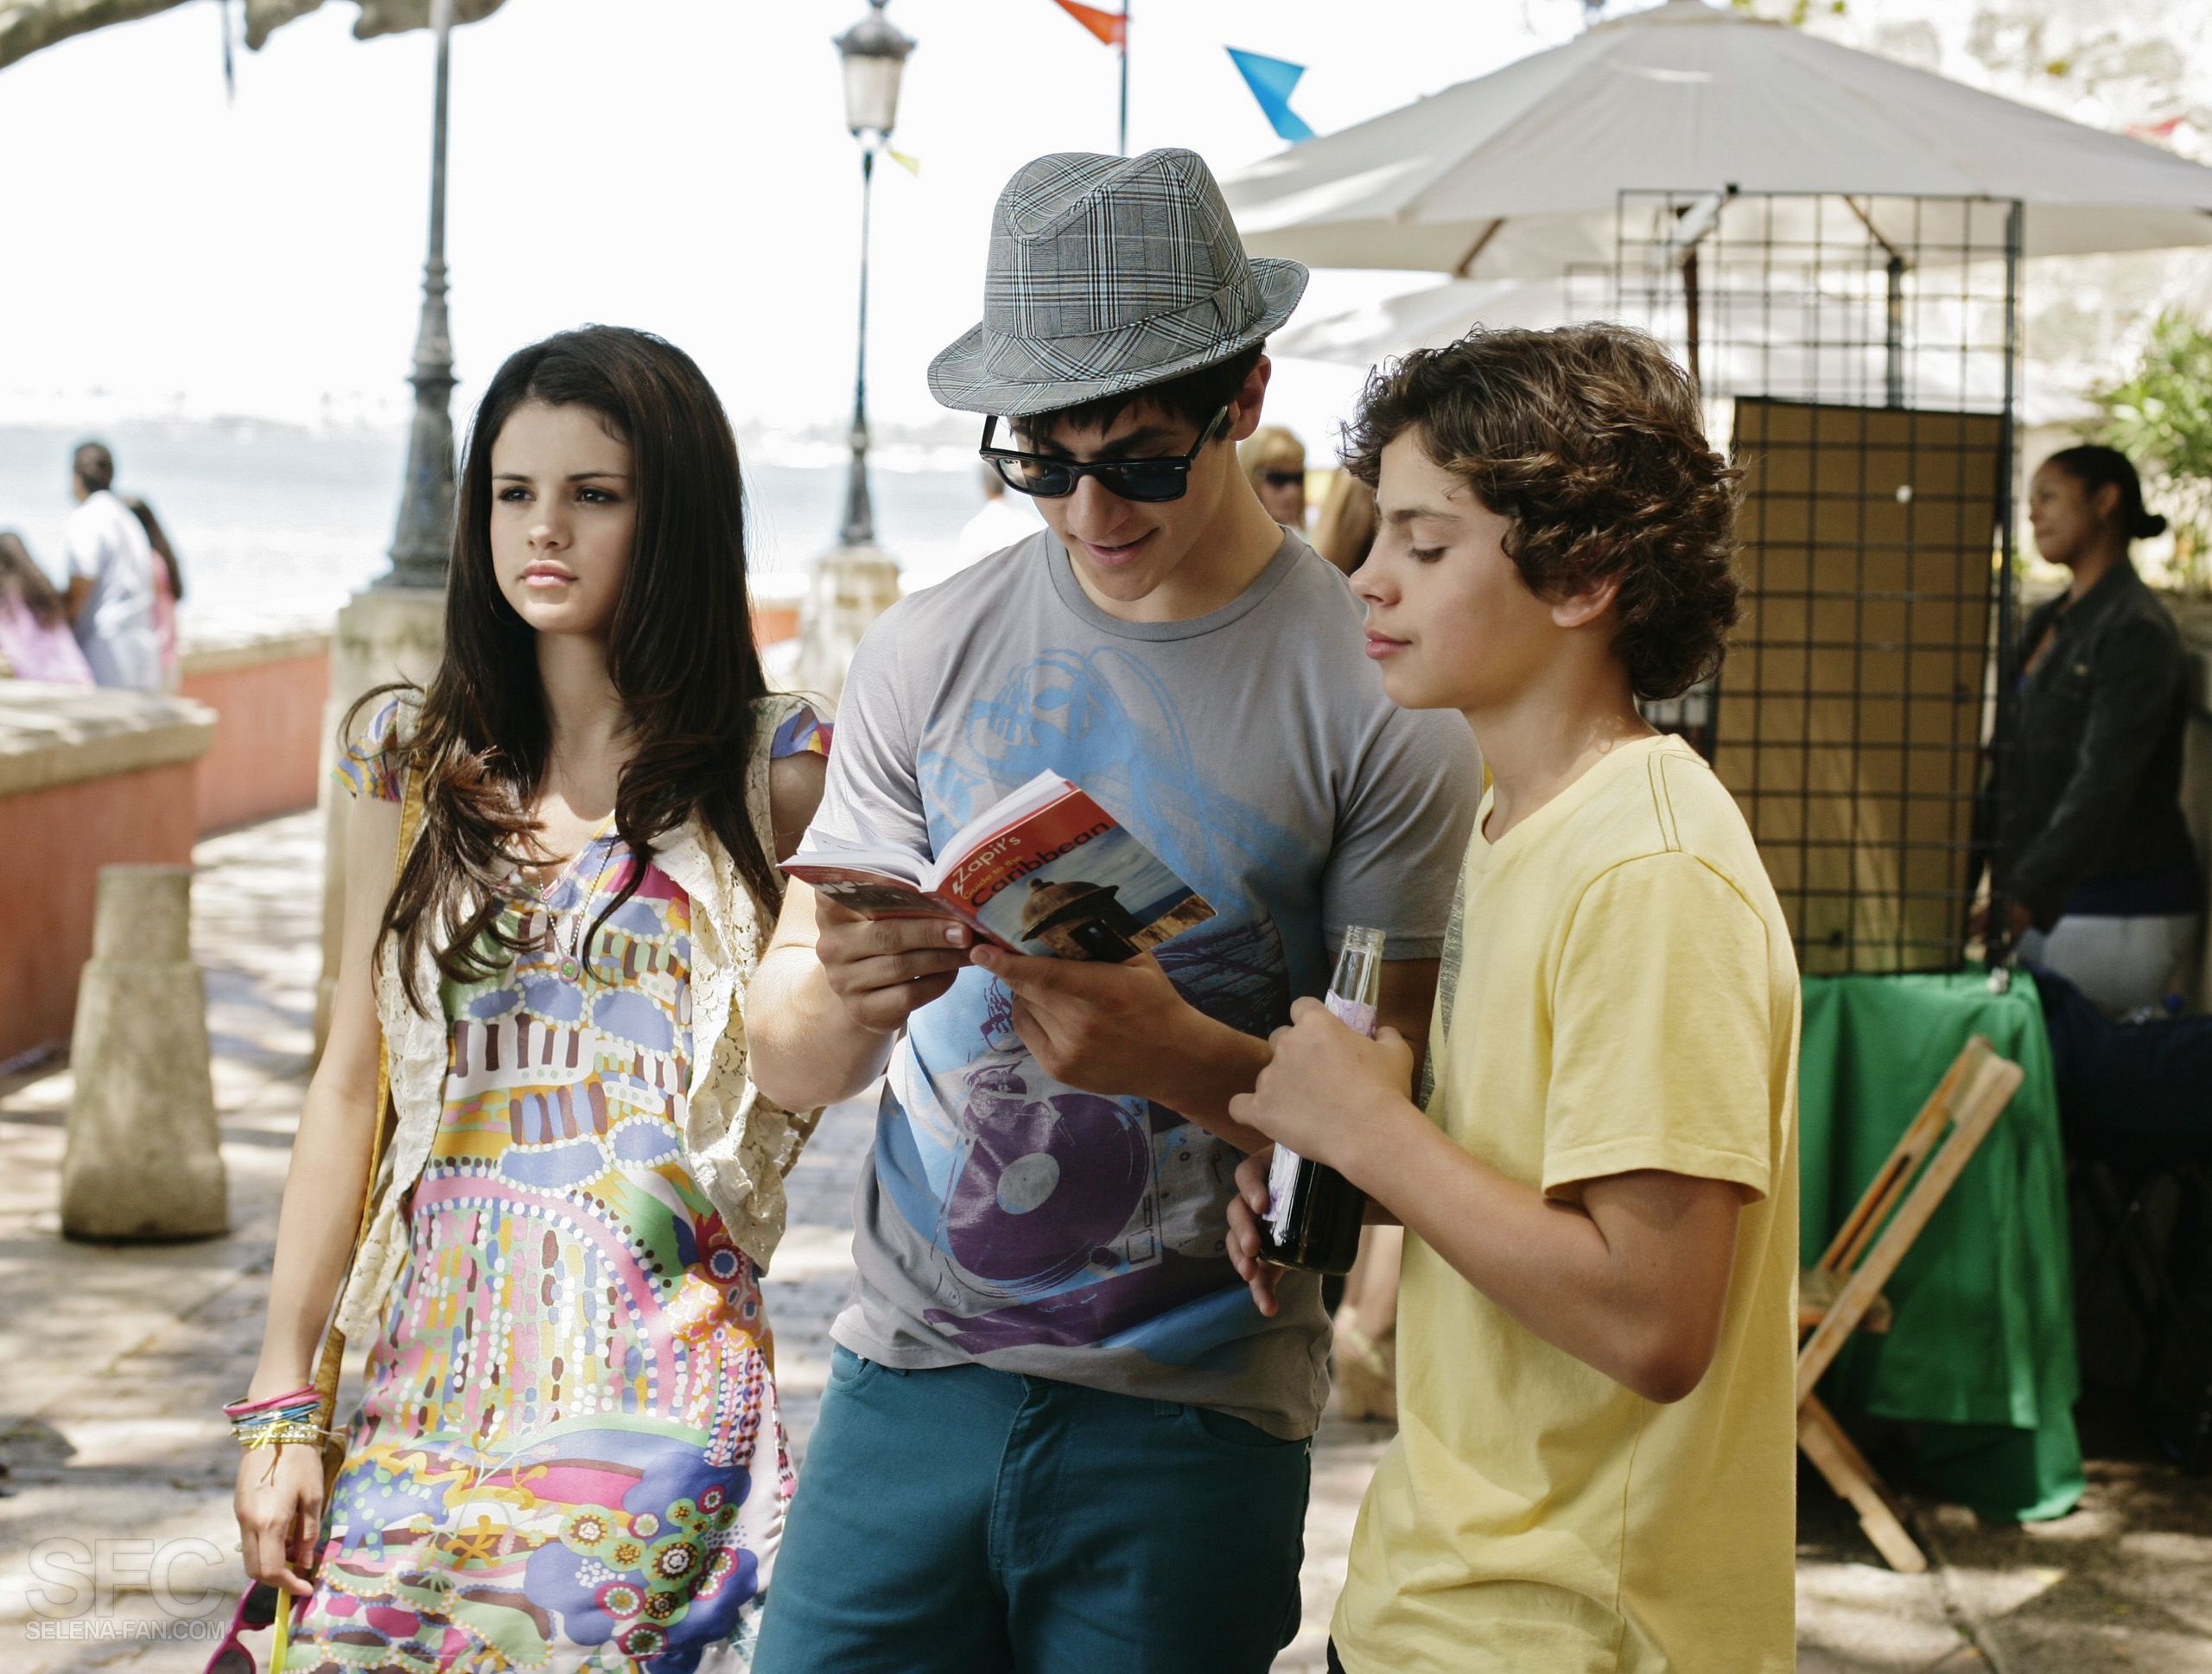 WOWP Movie - Jake T. Austin Photo (7129403) - Fanpop